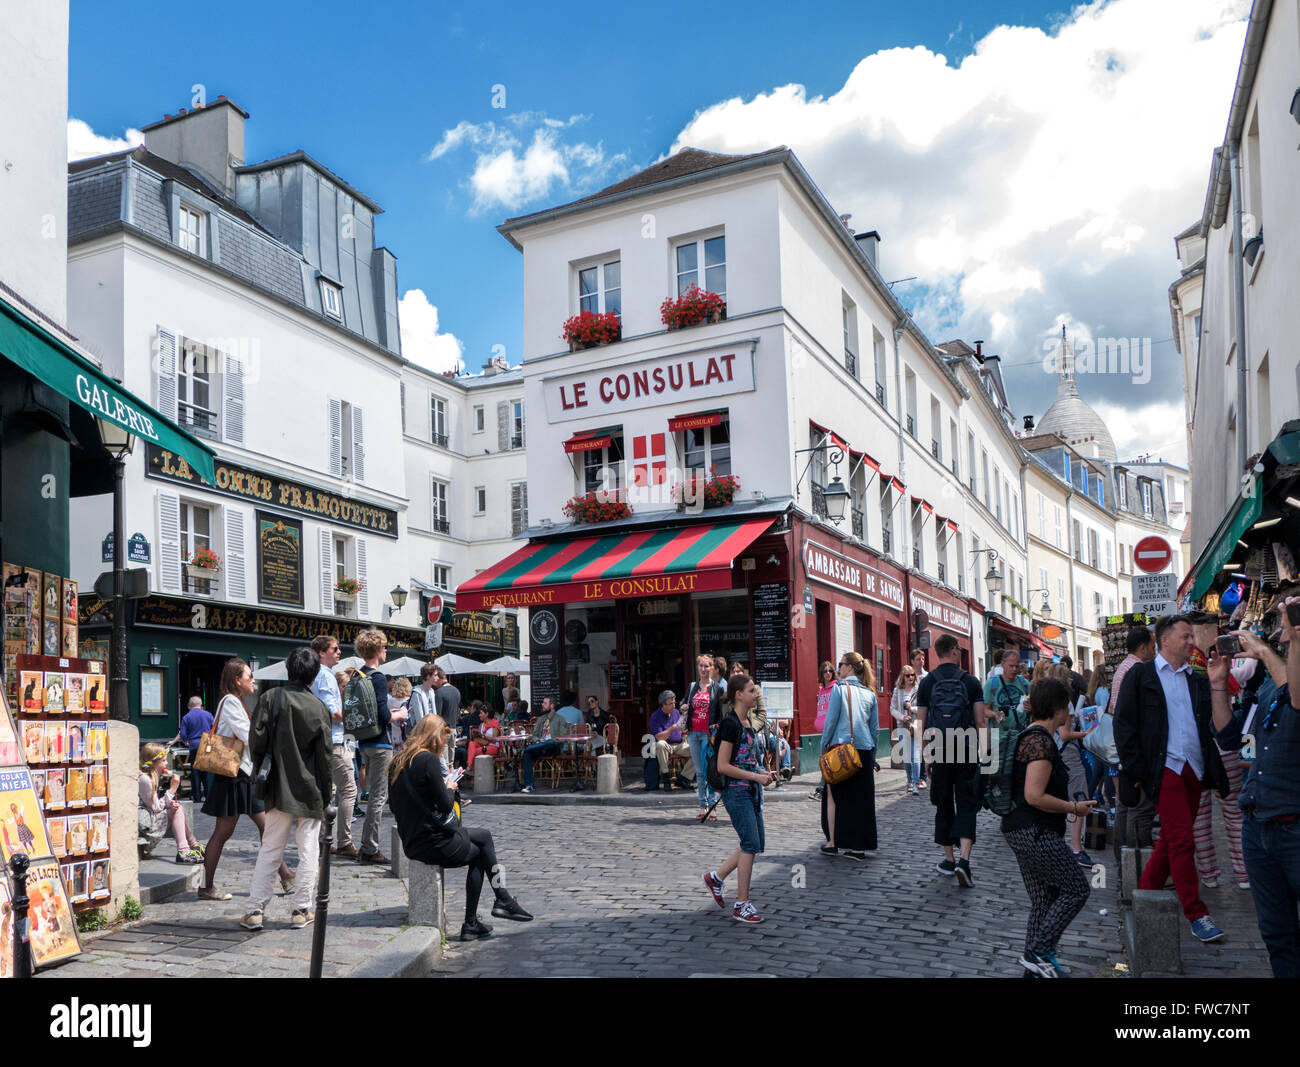 Montmartre, Paris, France. Stock Photo